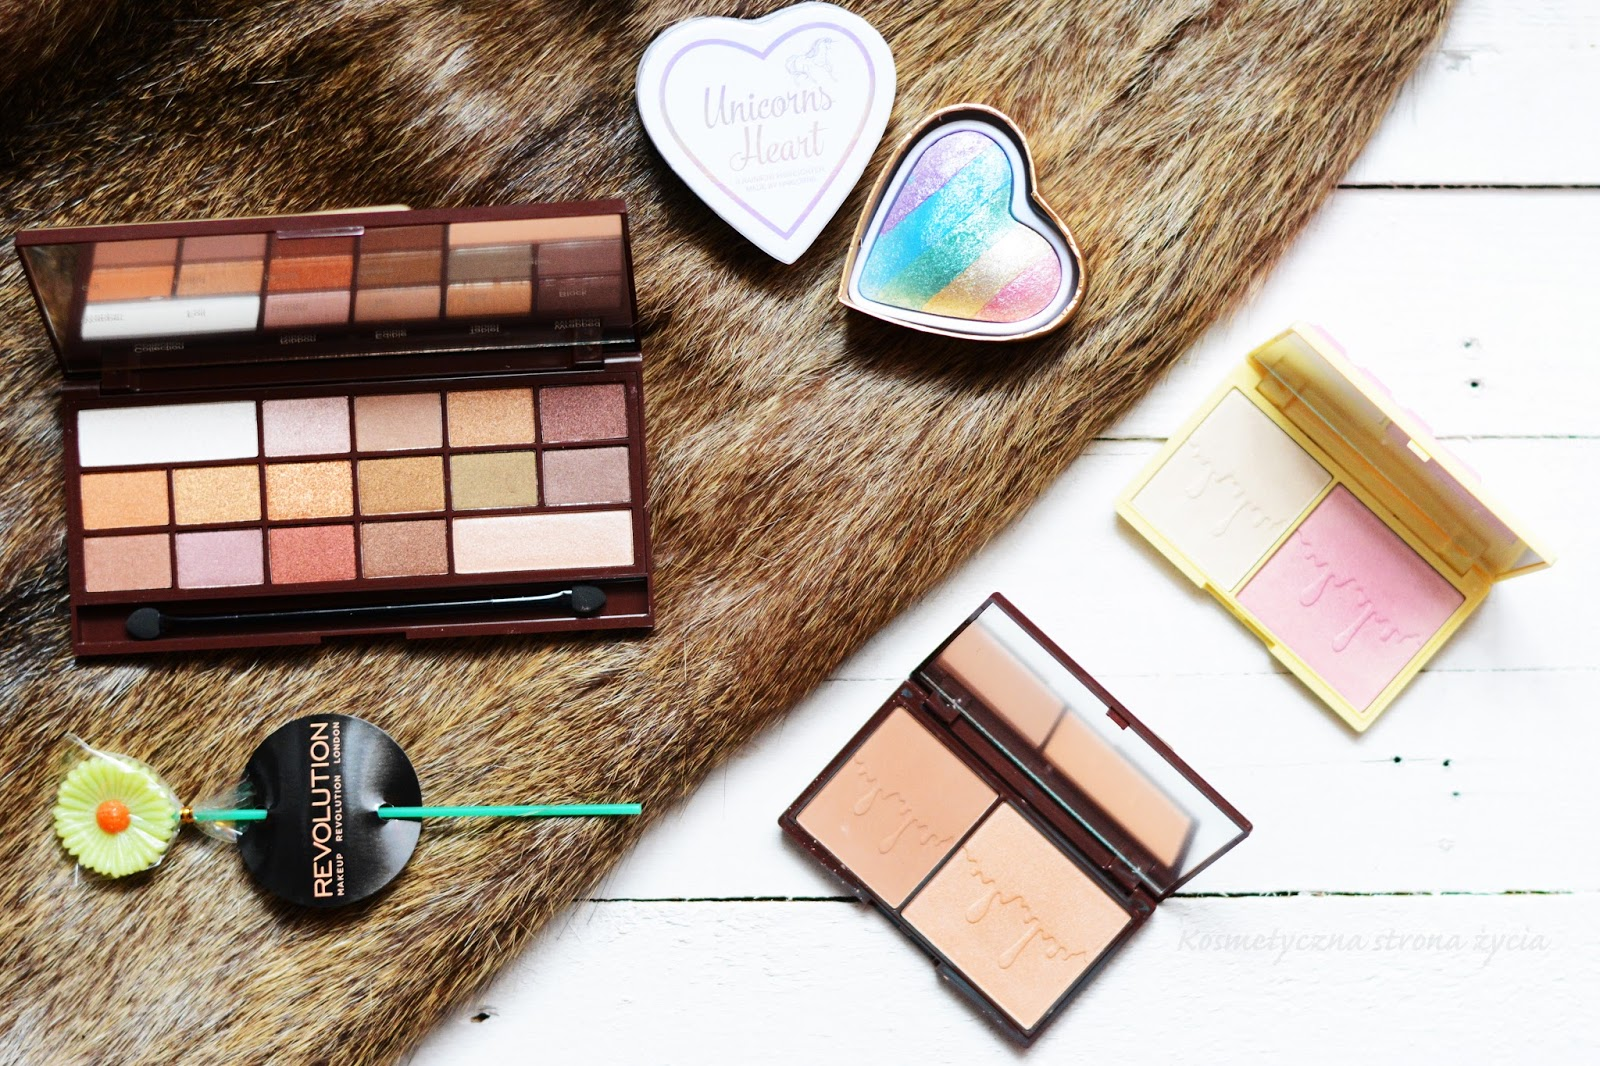 Makeup Revolution Retro Luxe, Golden Bar, Bronze and Glow, Light and Glow, Unicorns Heart